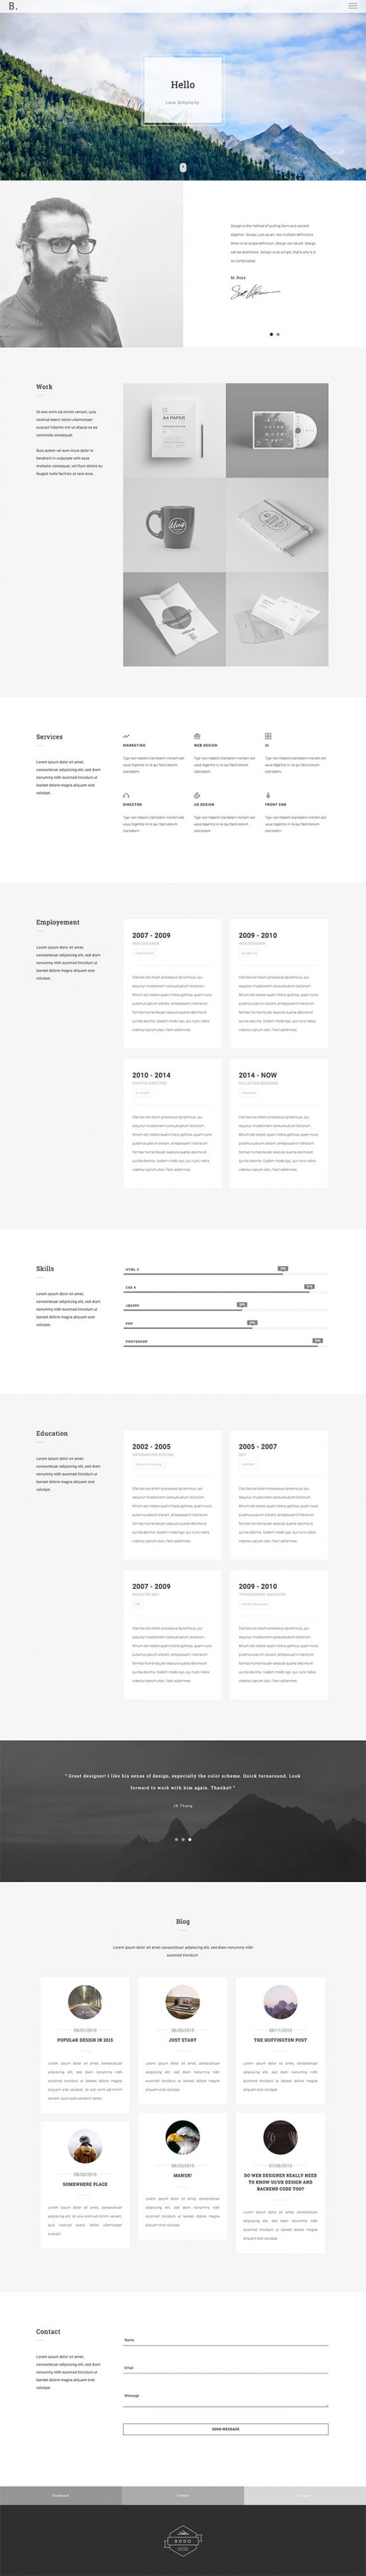 Bodo HTML template - Full preview